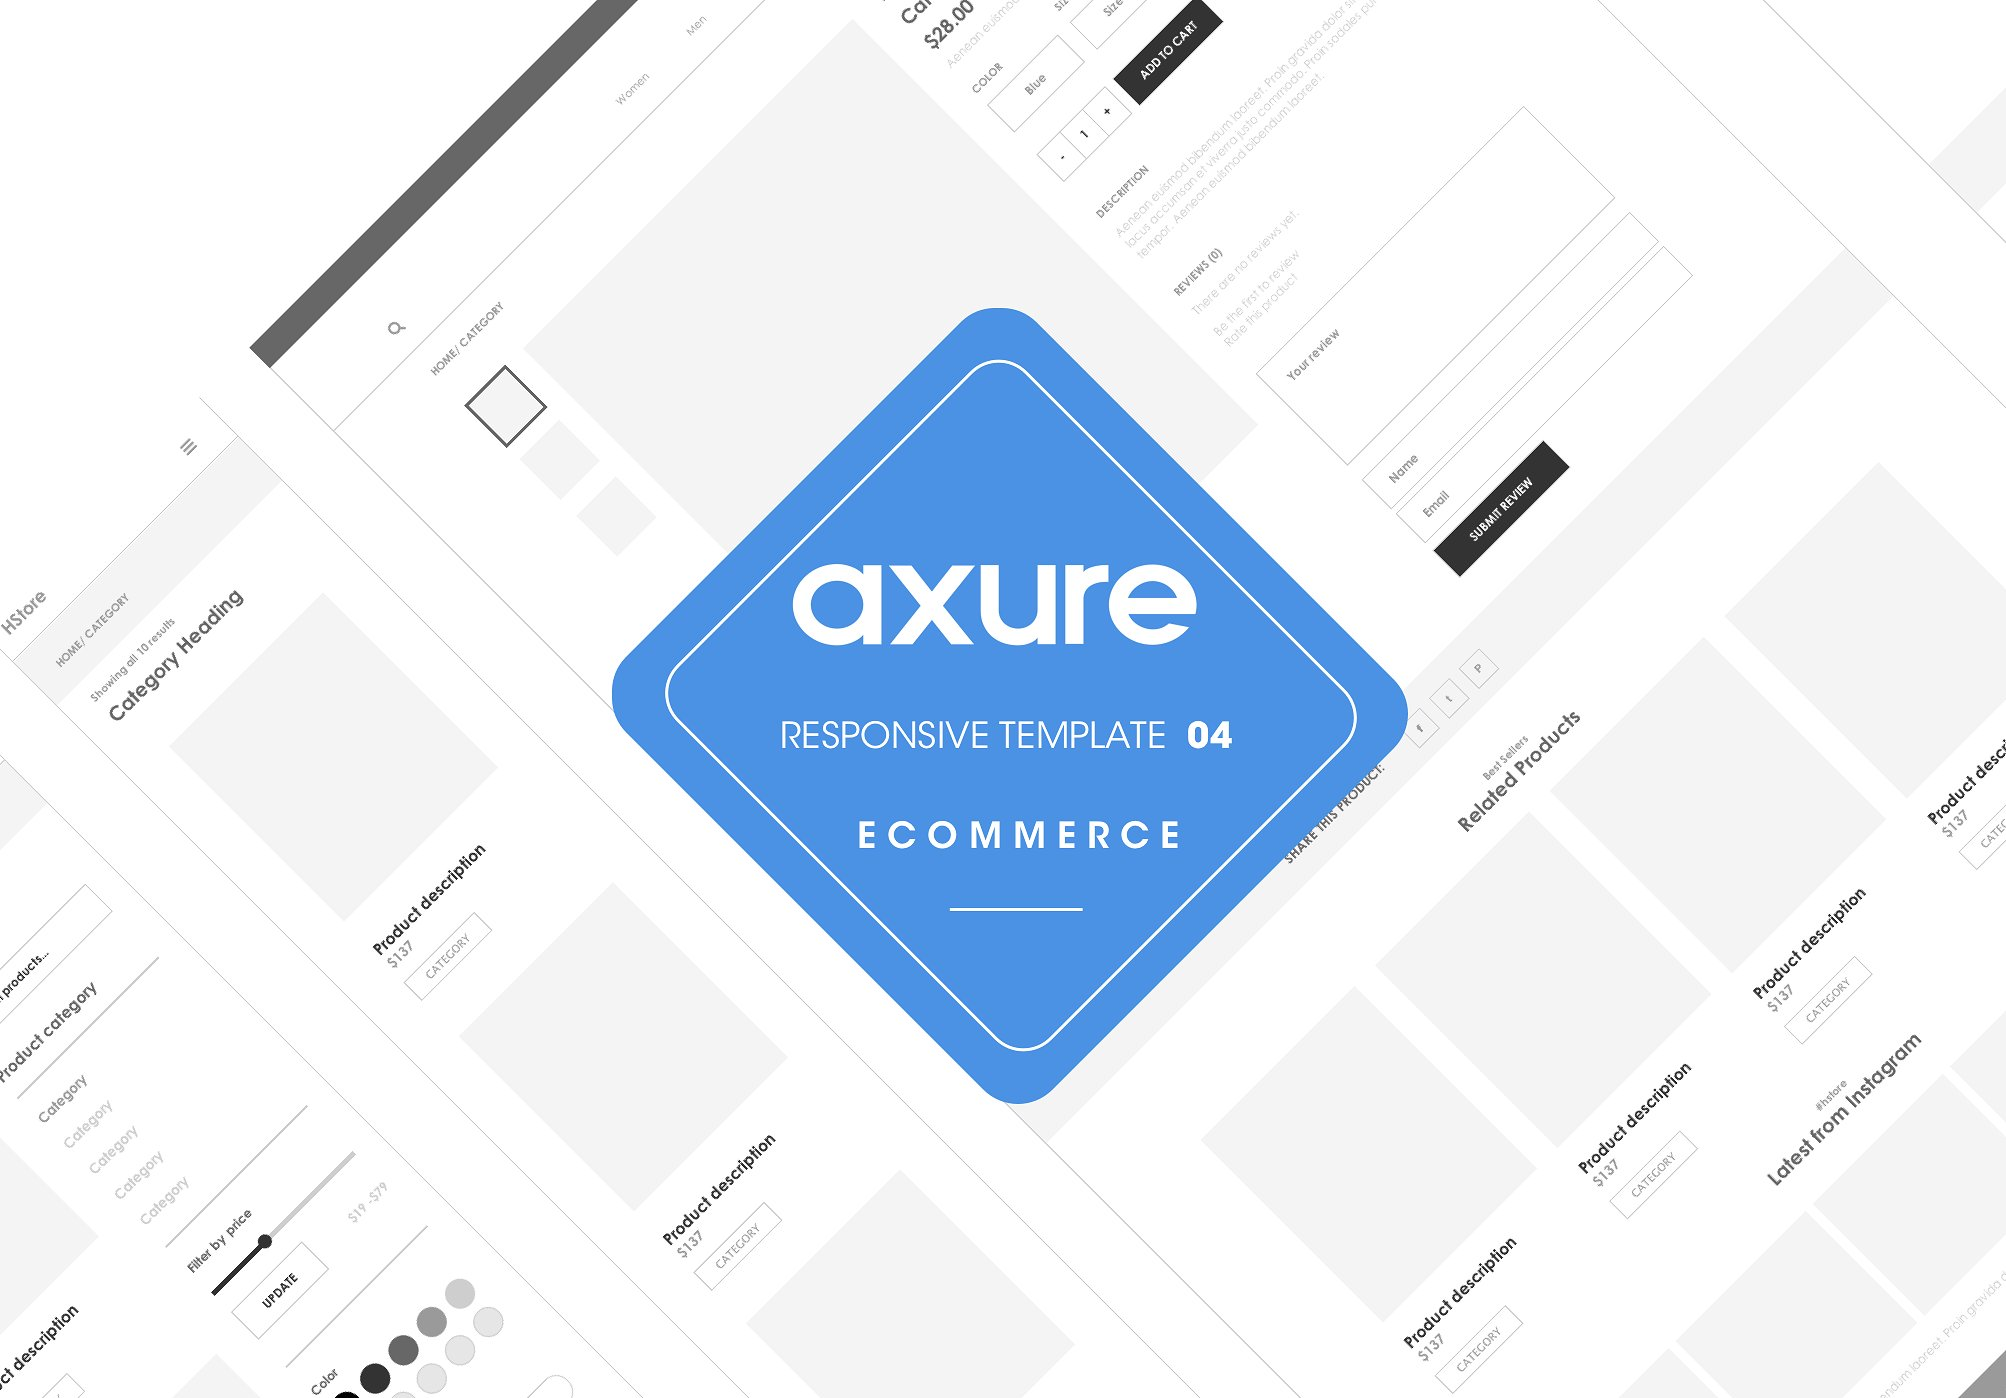 axure tablet template axure axure responsive ecommerce template4